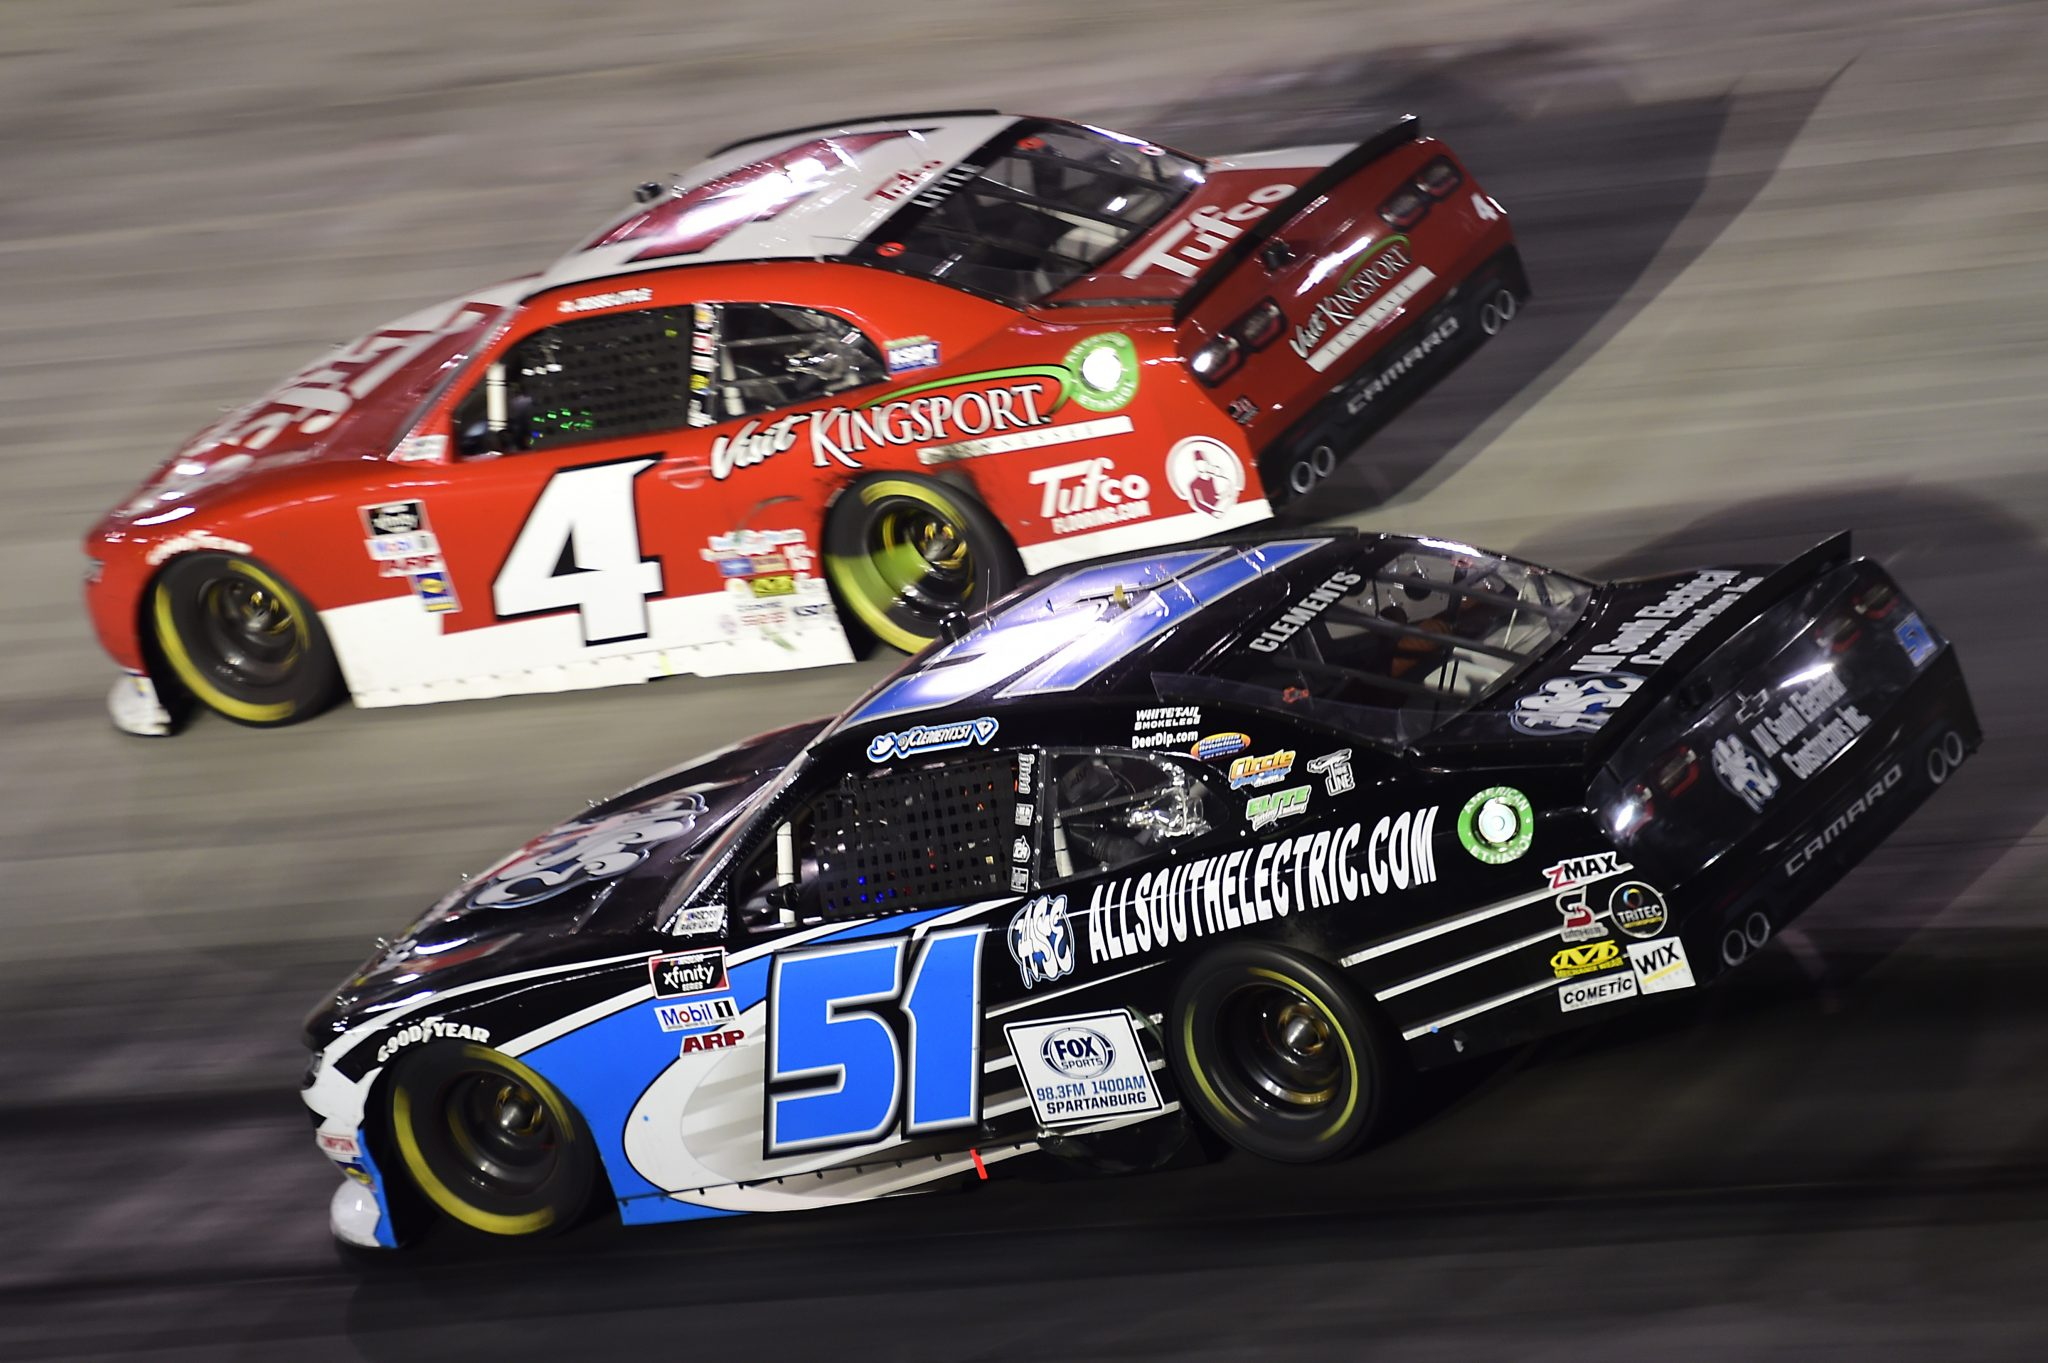 BRISTOL, TENNESSEE - SEPTEMBER 18: Jeremy Clements, driver of the #51 AllSouthElectric.com Chevrolet, and Jesse Little, driver of the #4 TufcoFlooring.com Chevrolet, race during the NASCAR Xfinity Series Food City 300 at Bristol Motor Speedway on September 18, 2020 in Bristol, Tennessee. (Photo by Jared C. Tilton/Getty Images) | Getty Images